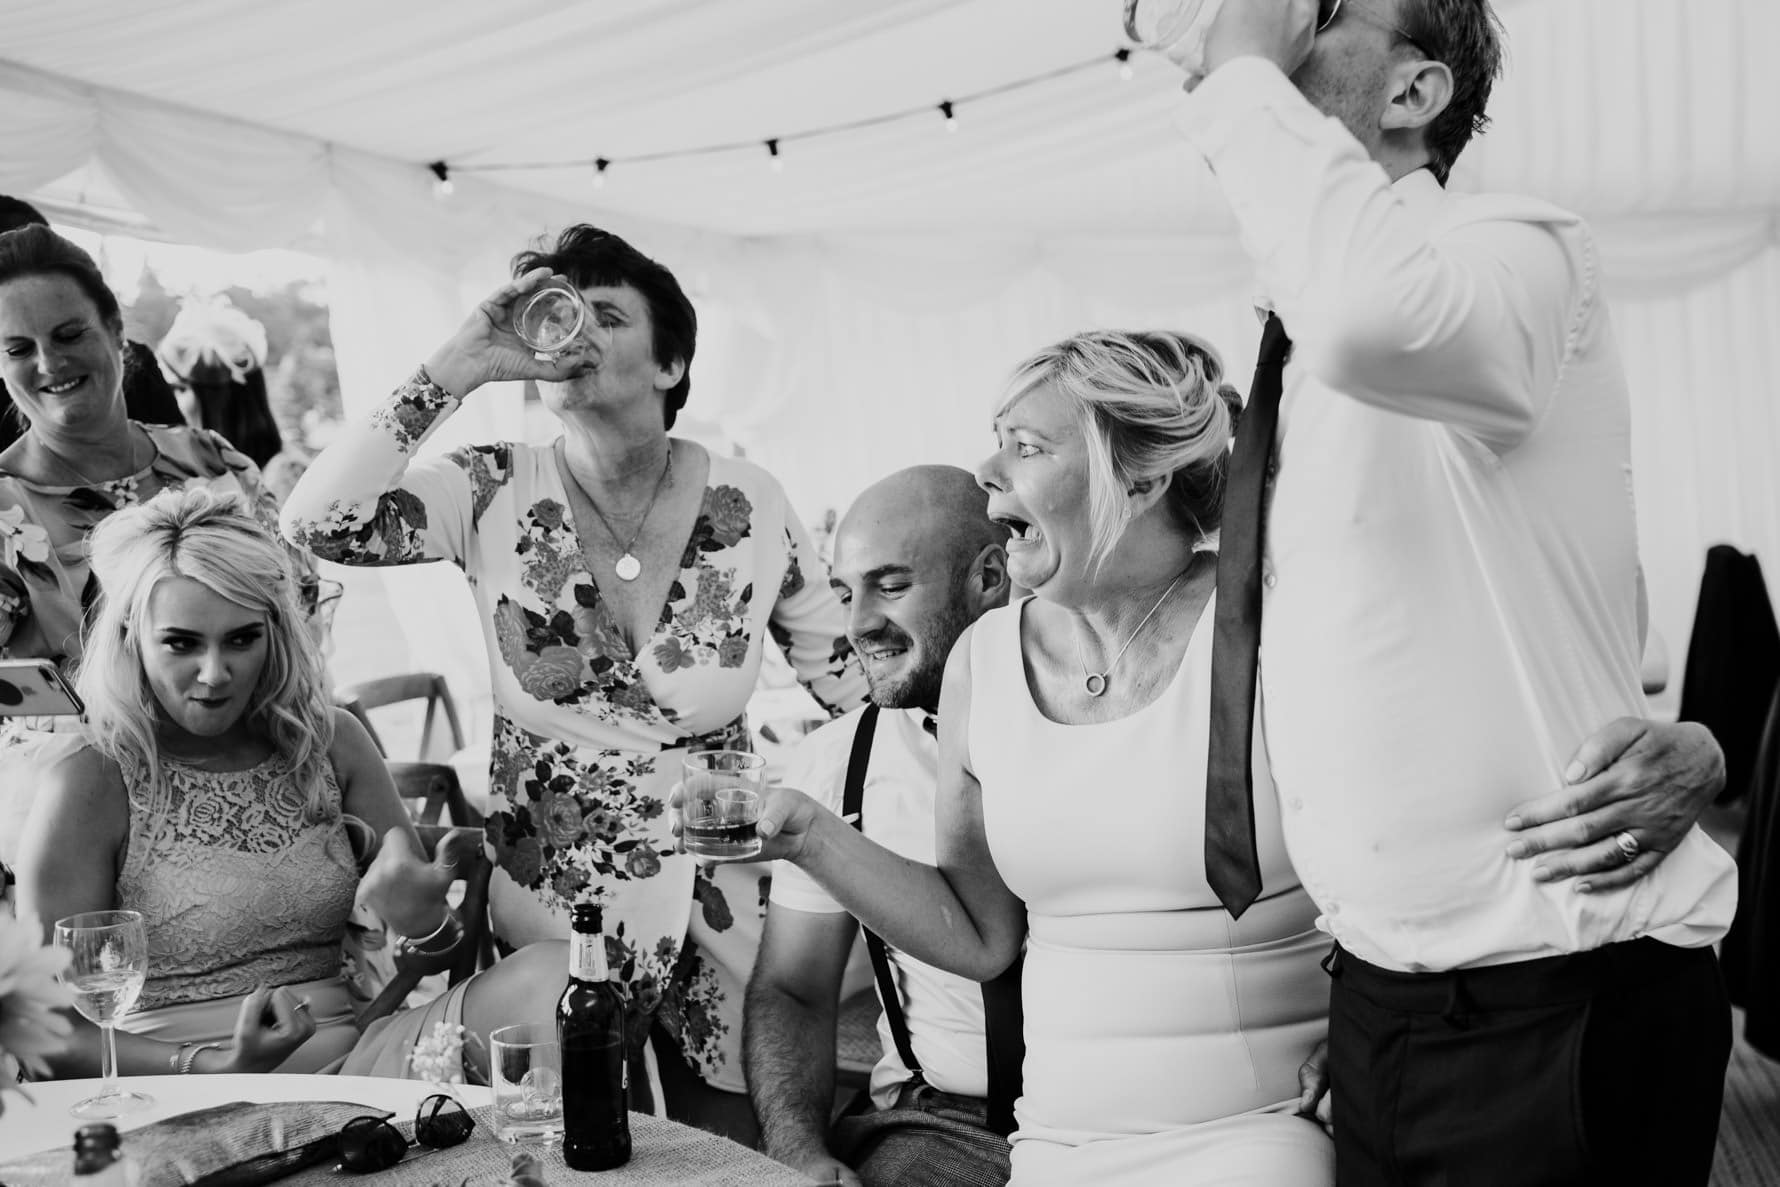 Group of wedding guests drinking shots